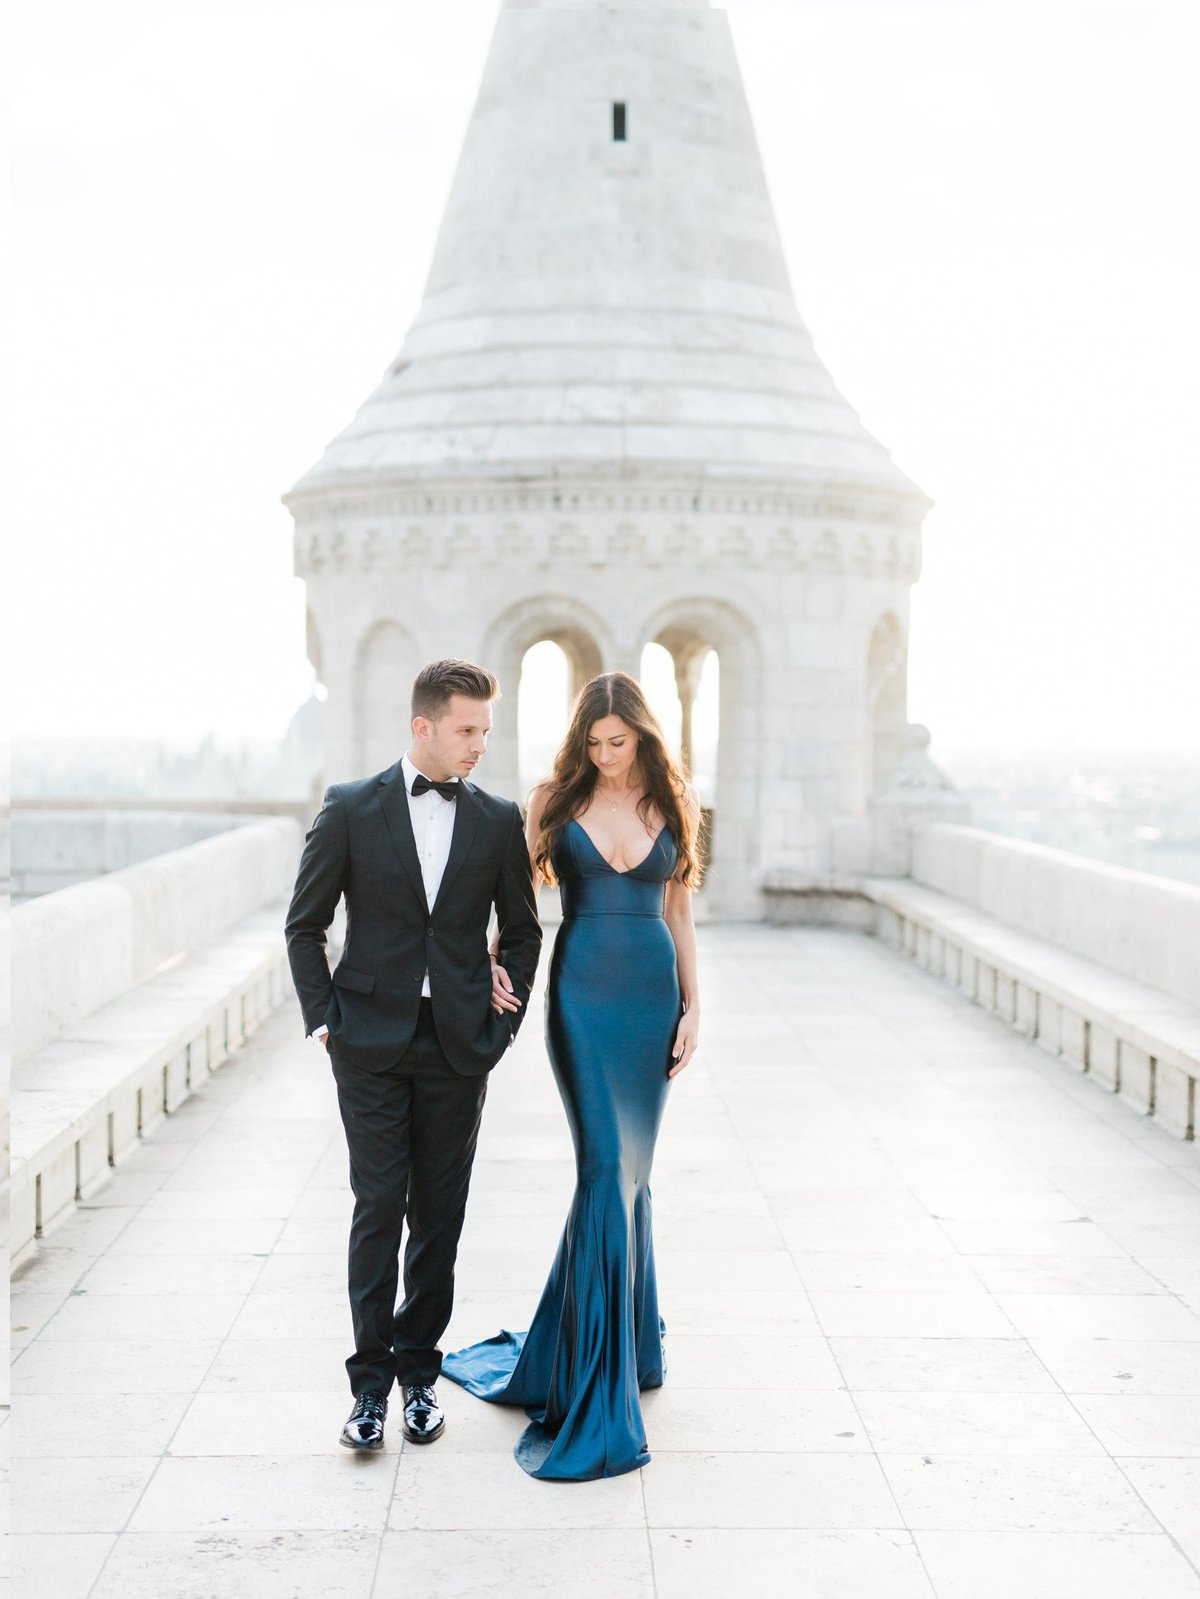 Rachael+Tyson_Budapest_MichelleWeverPhotography-2-1